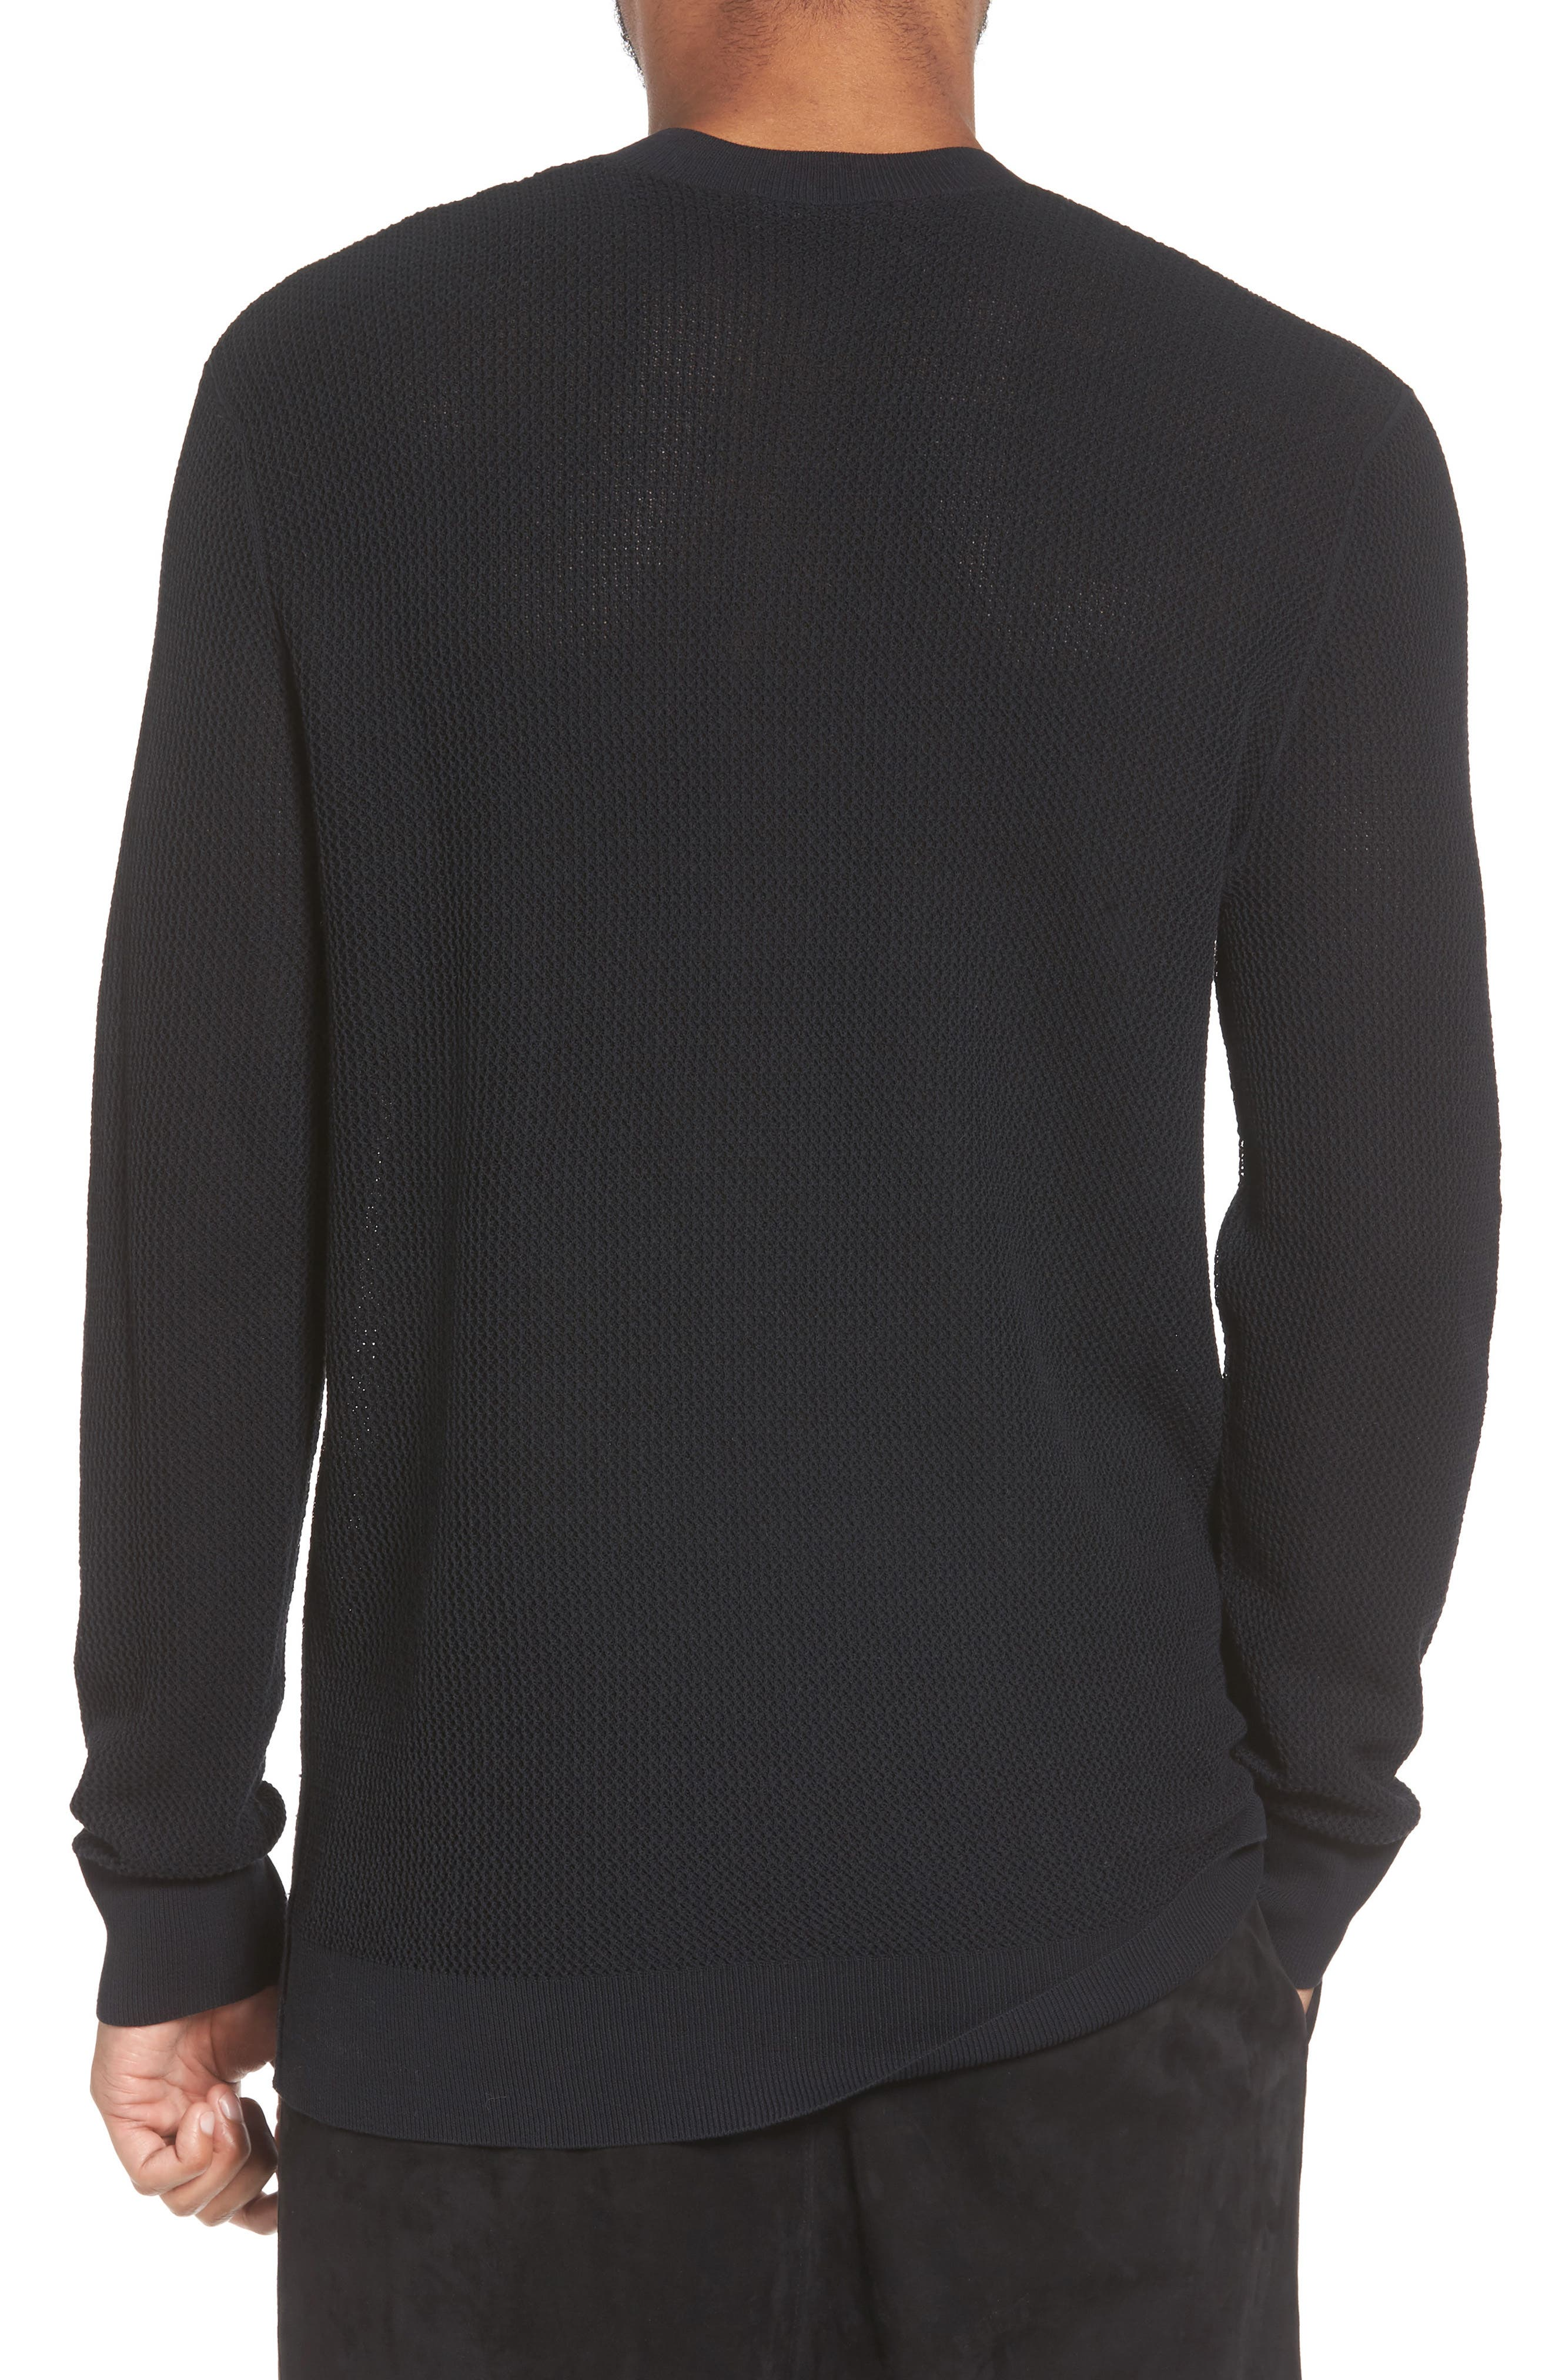 Mesh Crewneck Sweater,                             Alternate thumbnail 2, color,                             001